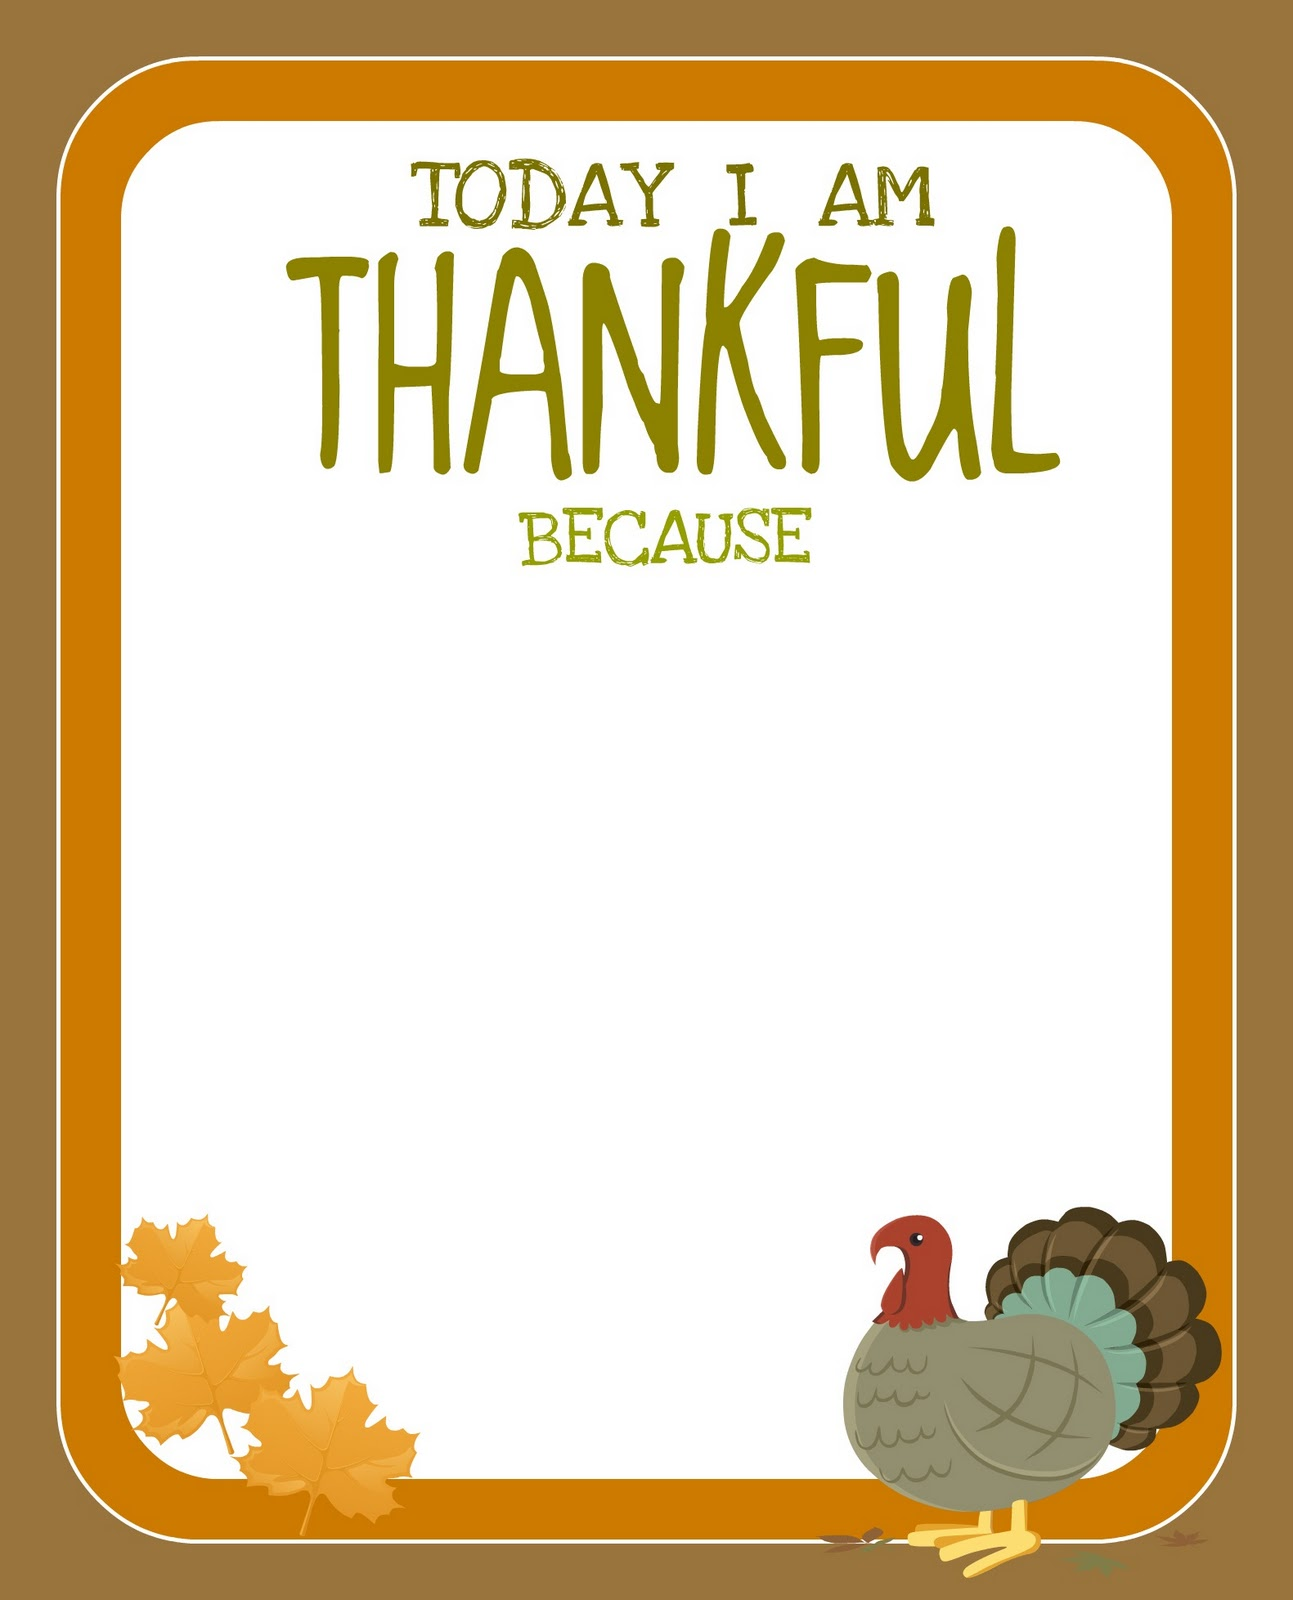 Impeccable image with regard to free printable turkey template